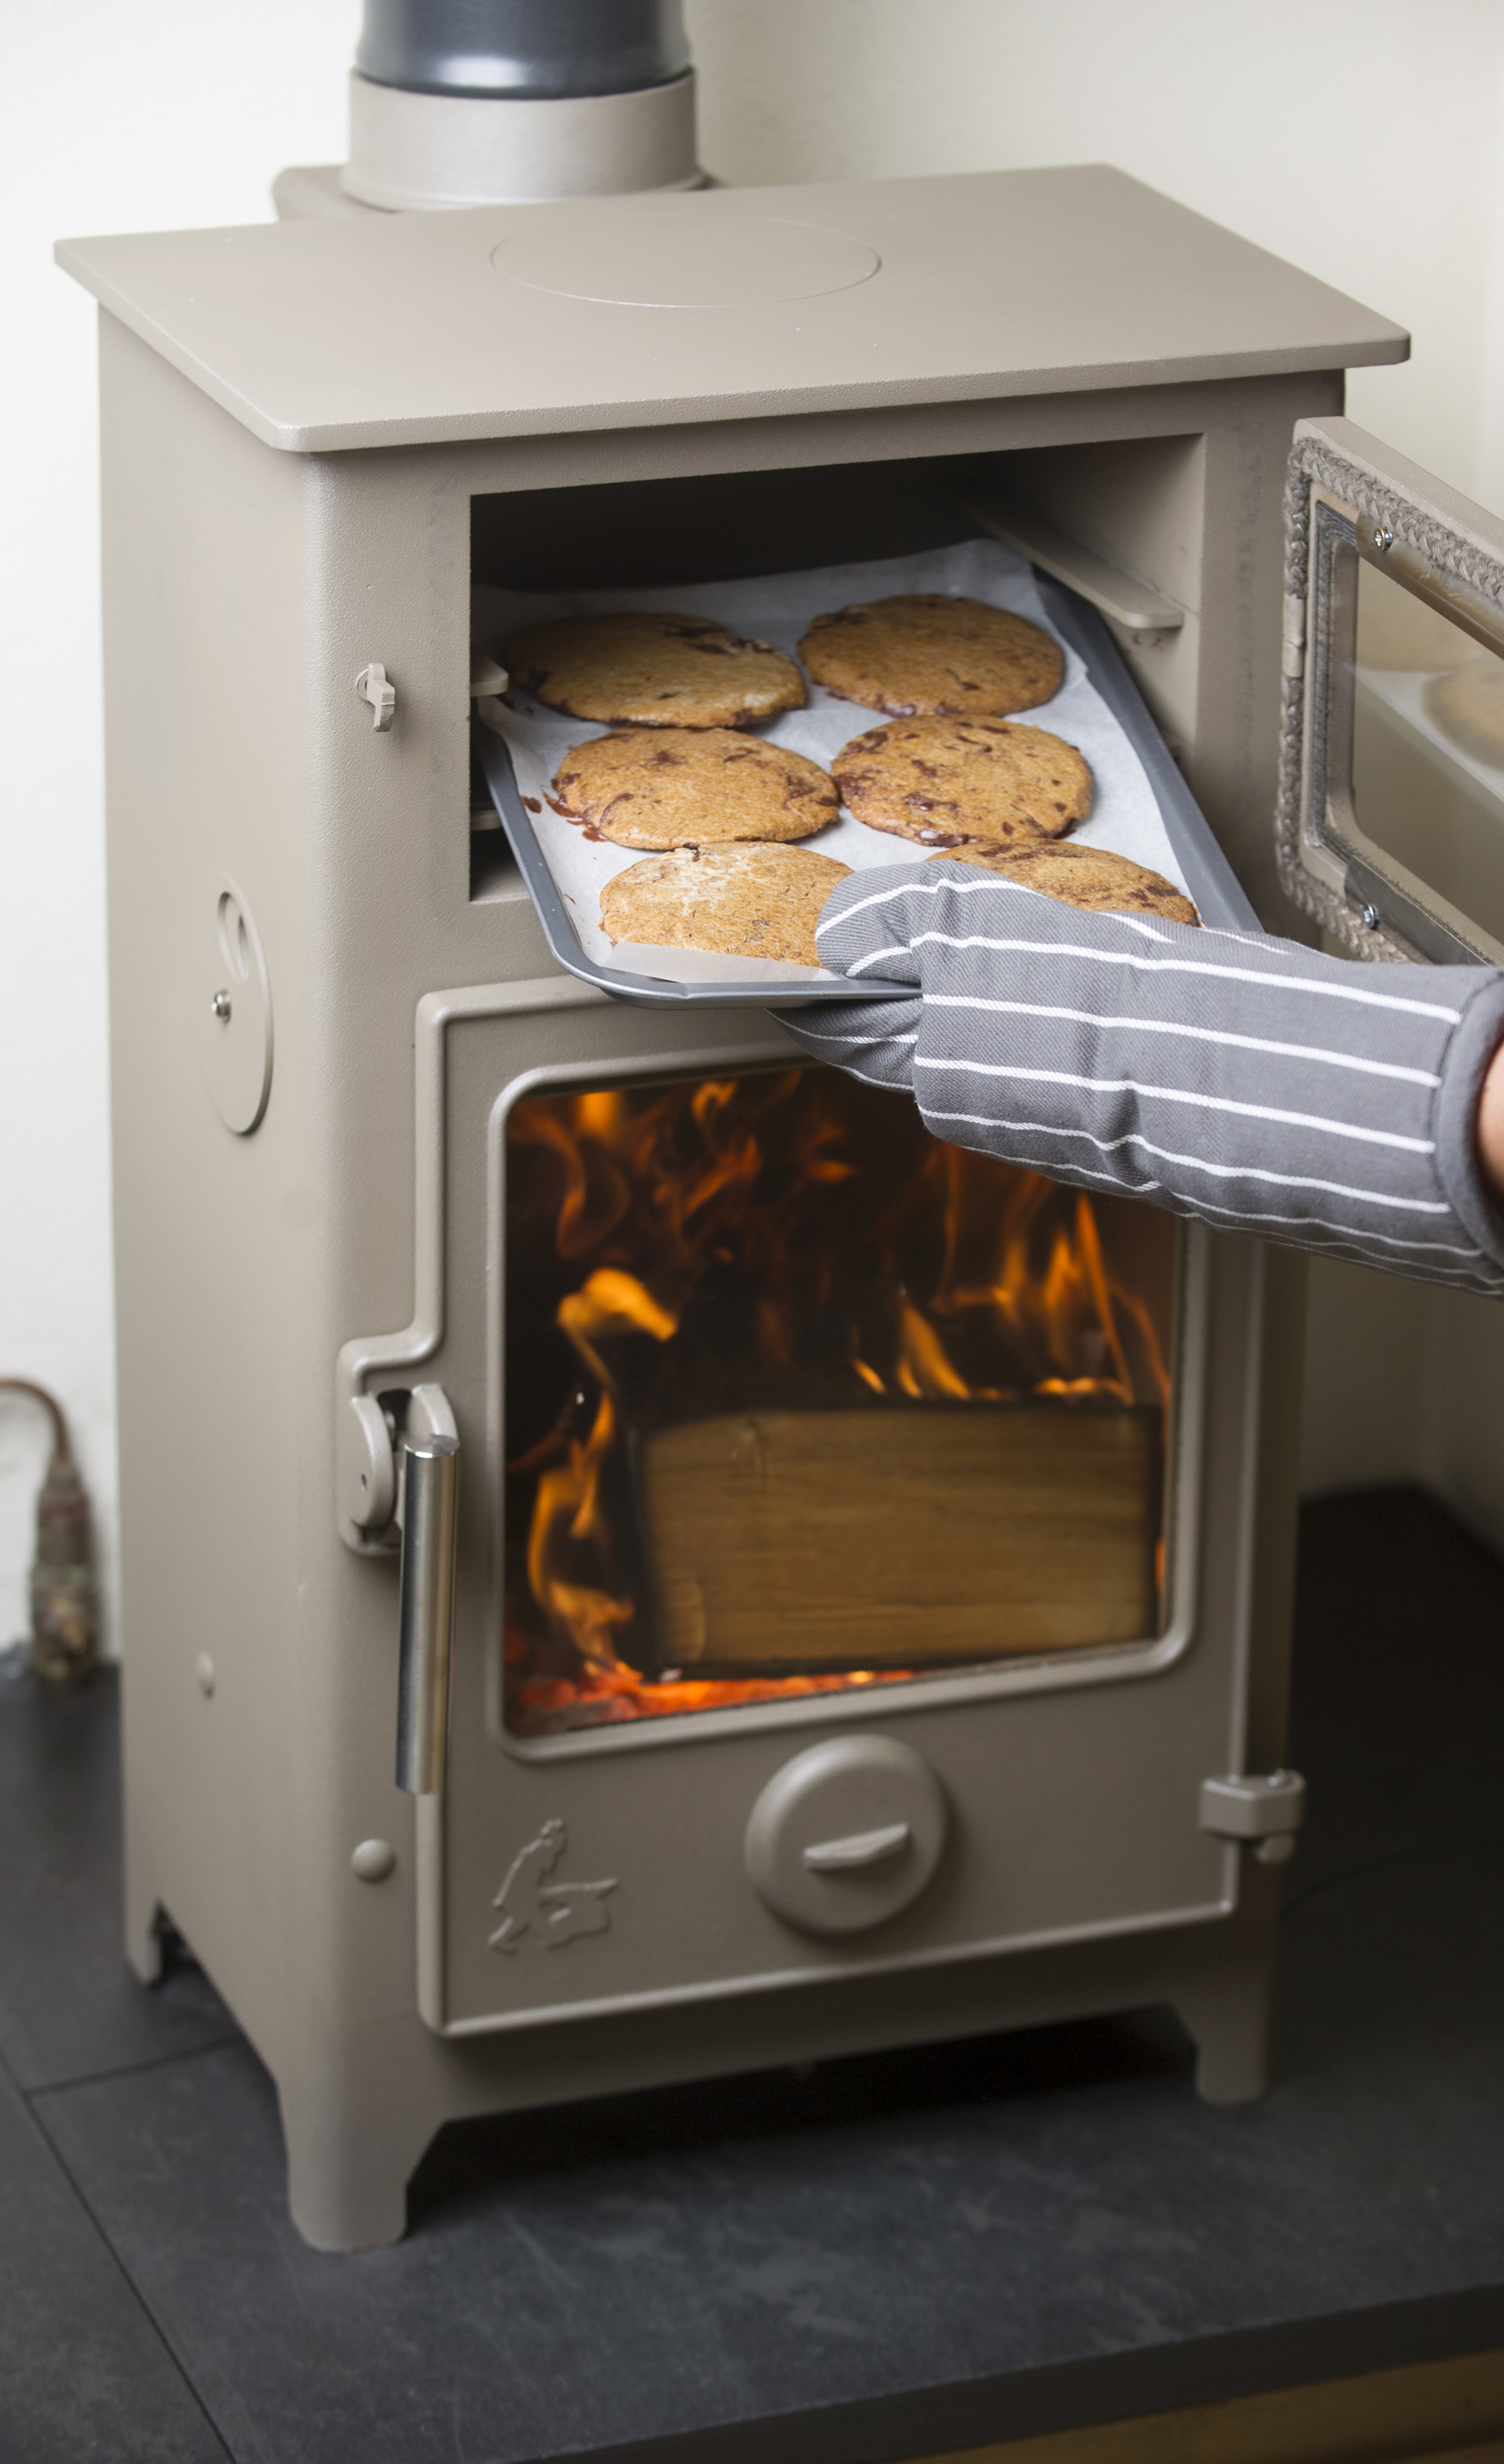 Dartmoor baker tasty new stove to keep you toasty dean forge - Small space wood stove model ...